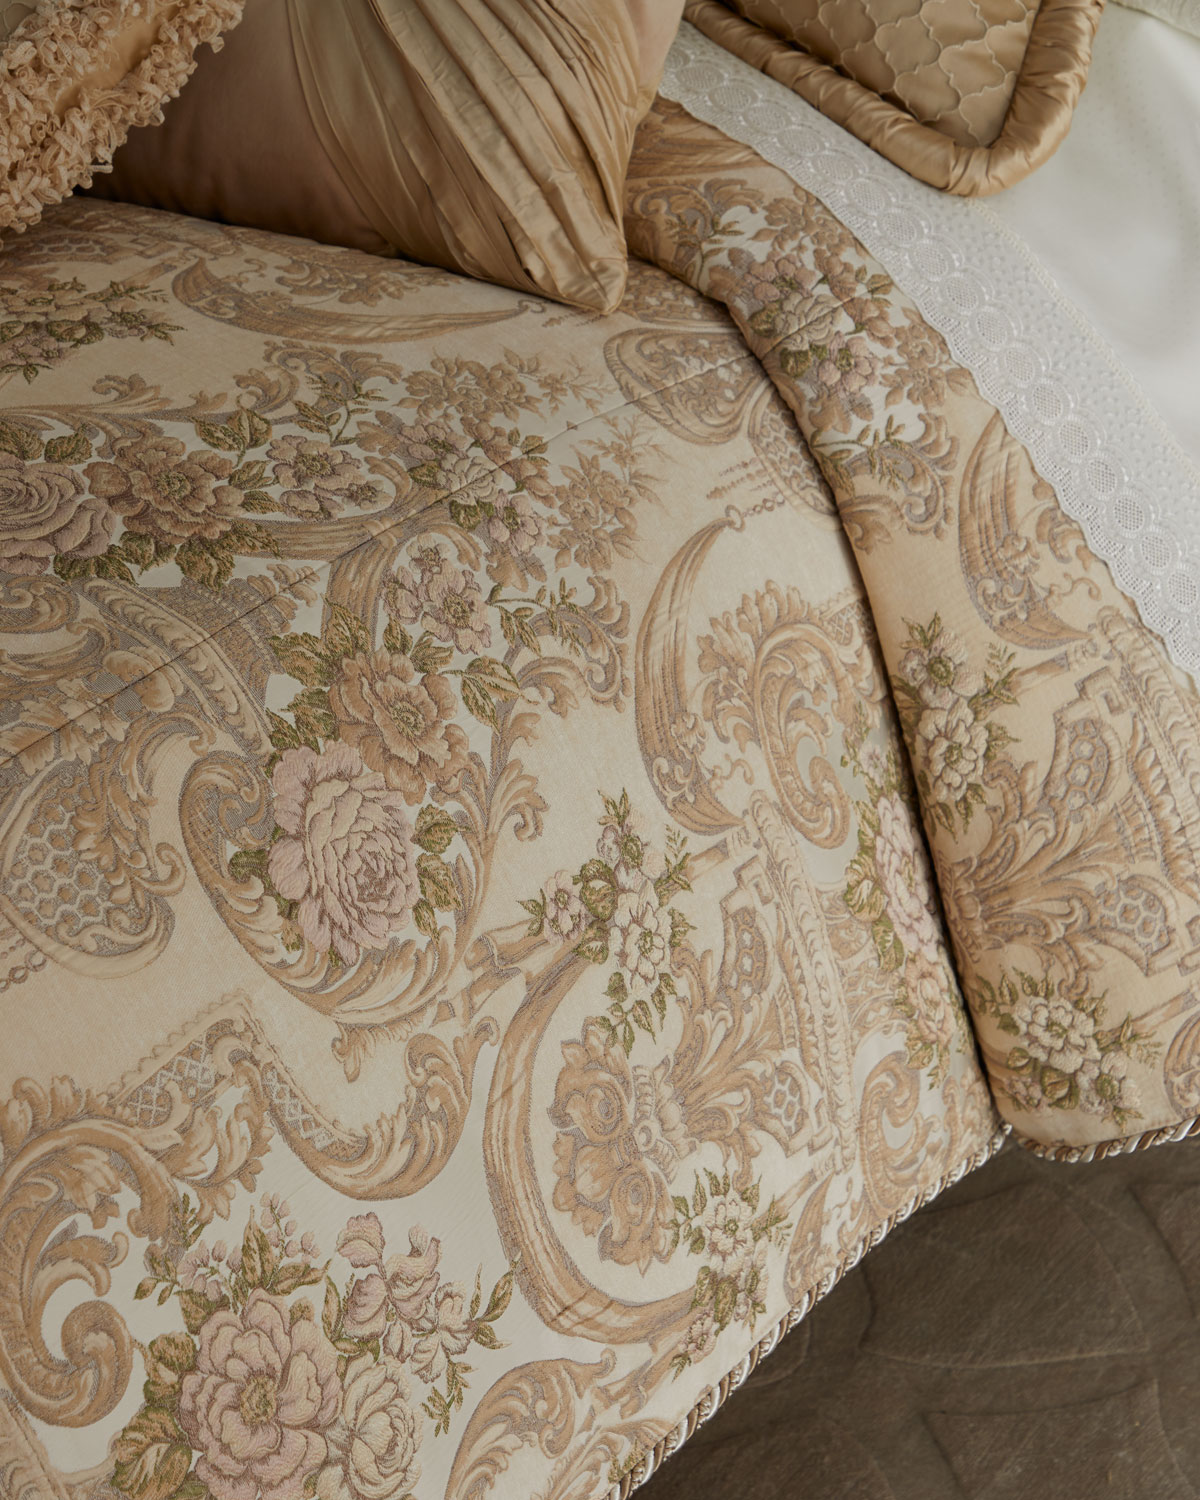 9b00fb913f71 Dian Austin Couture Home Mayorka King Duvet Cover with Tassels ...